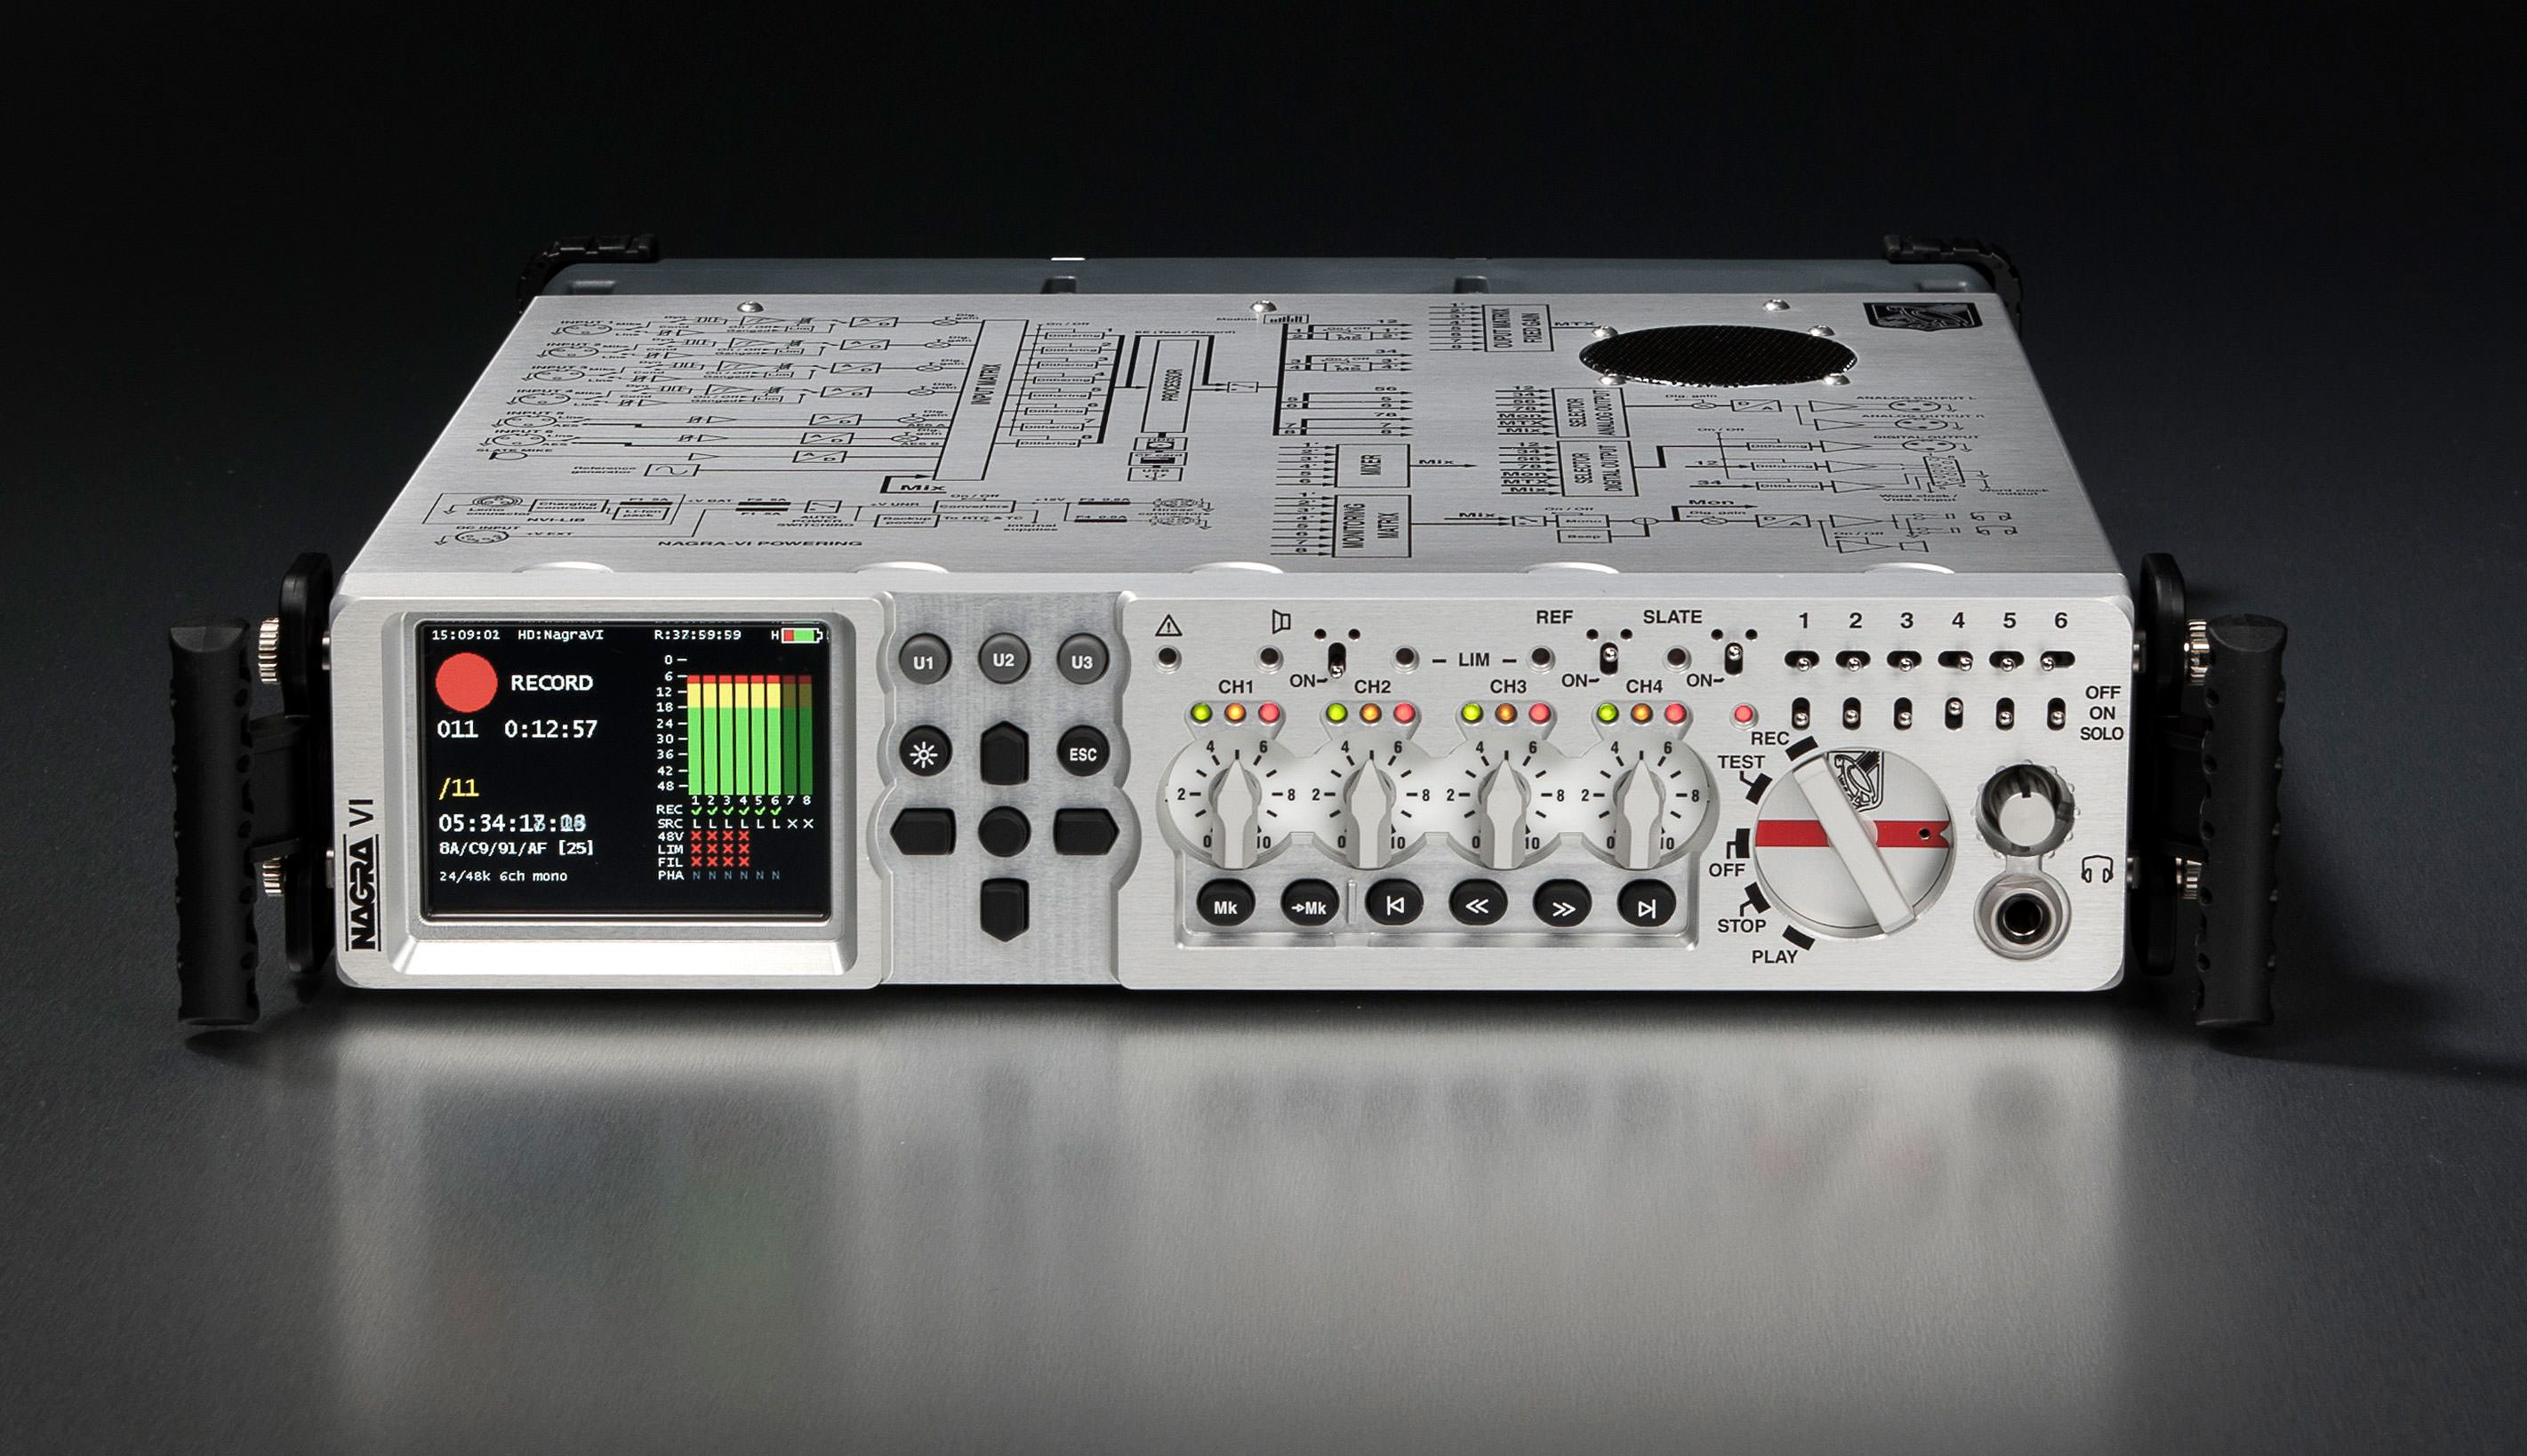 Nagra Vi Audio Recorder 6 2 Tracks Hd Cf 60th Anniversary The Preamplifier With Dual Recording Ask A Question